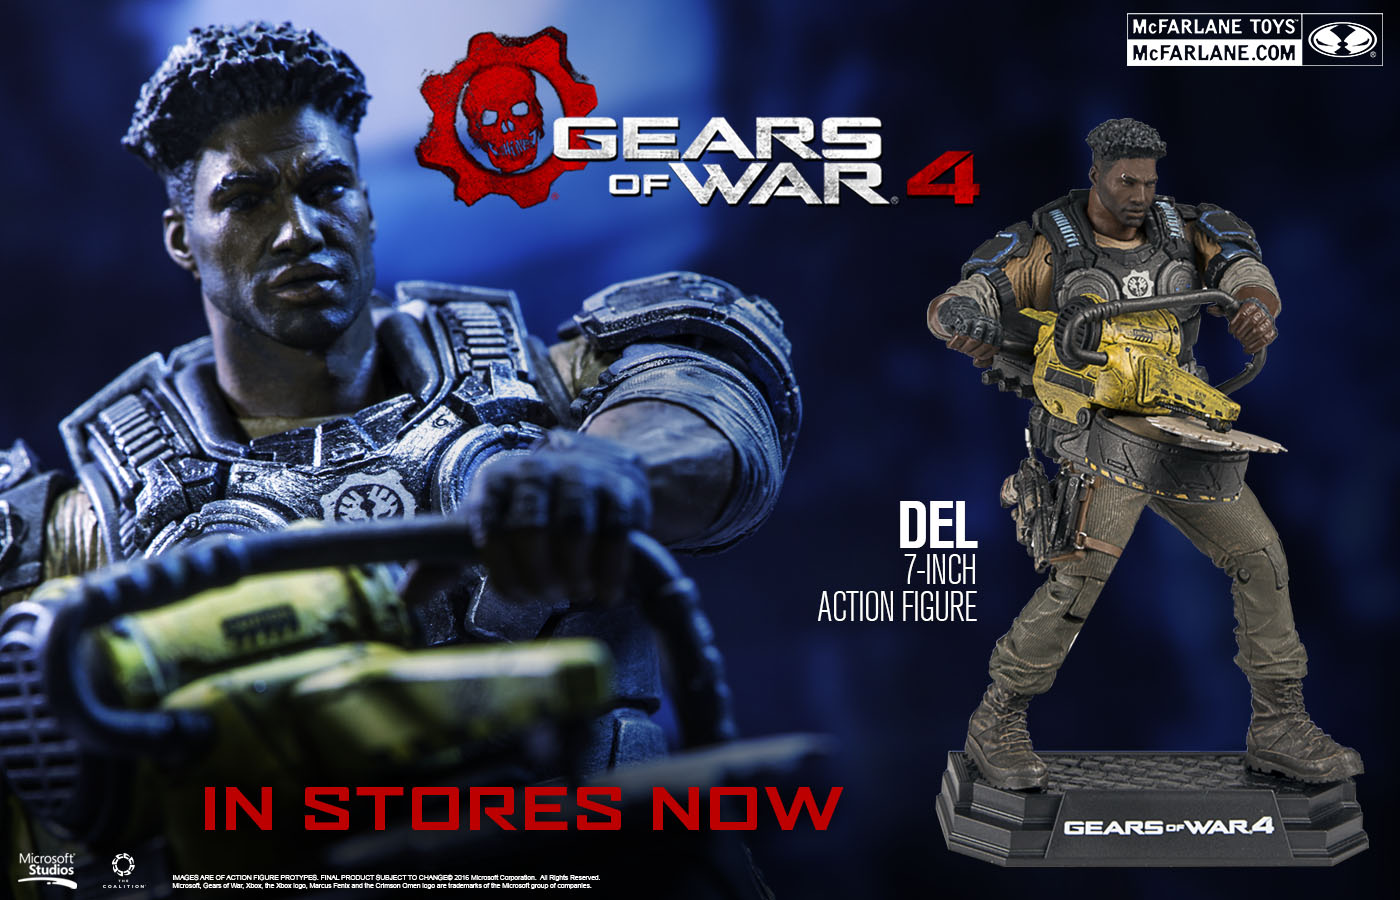 GOW Del slider IN STORES NOW